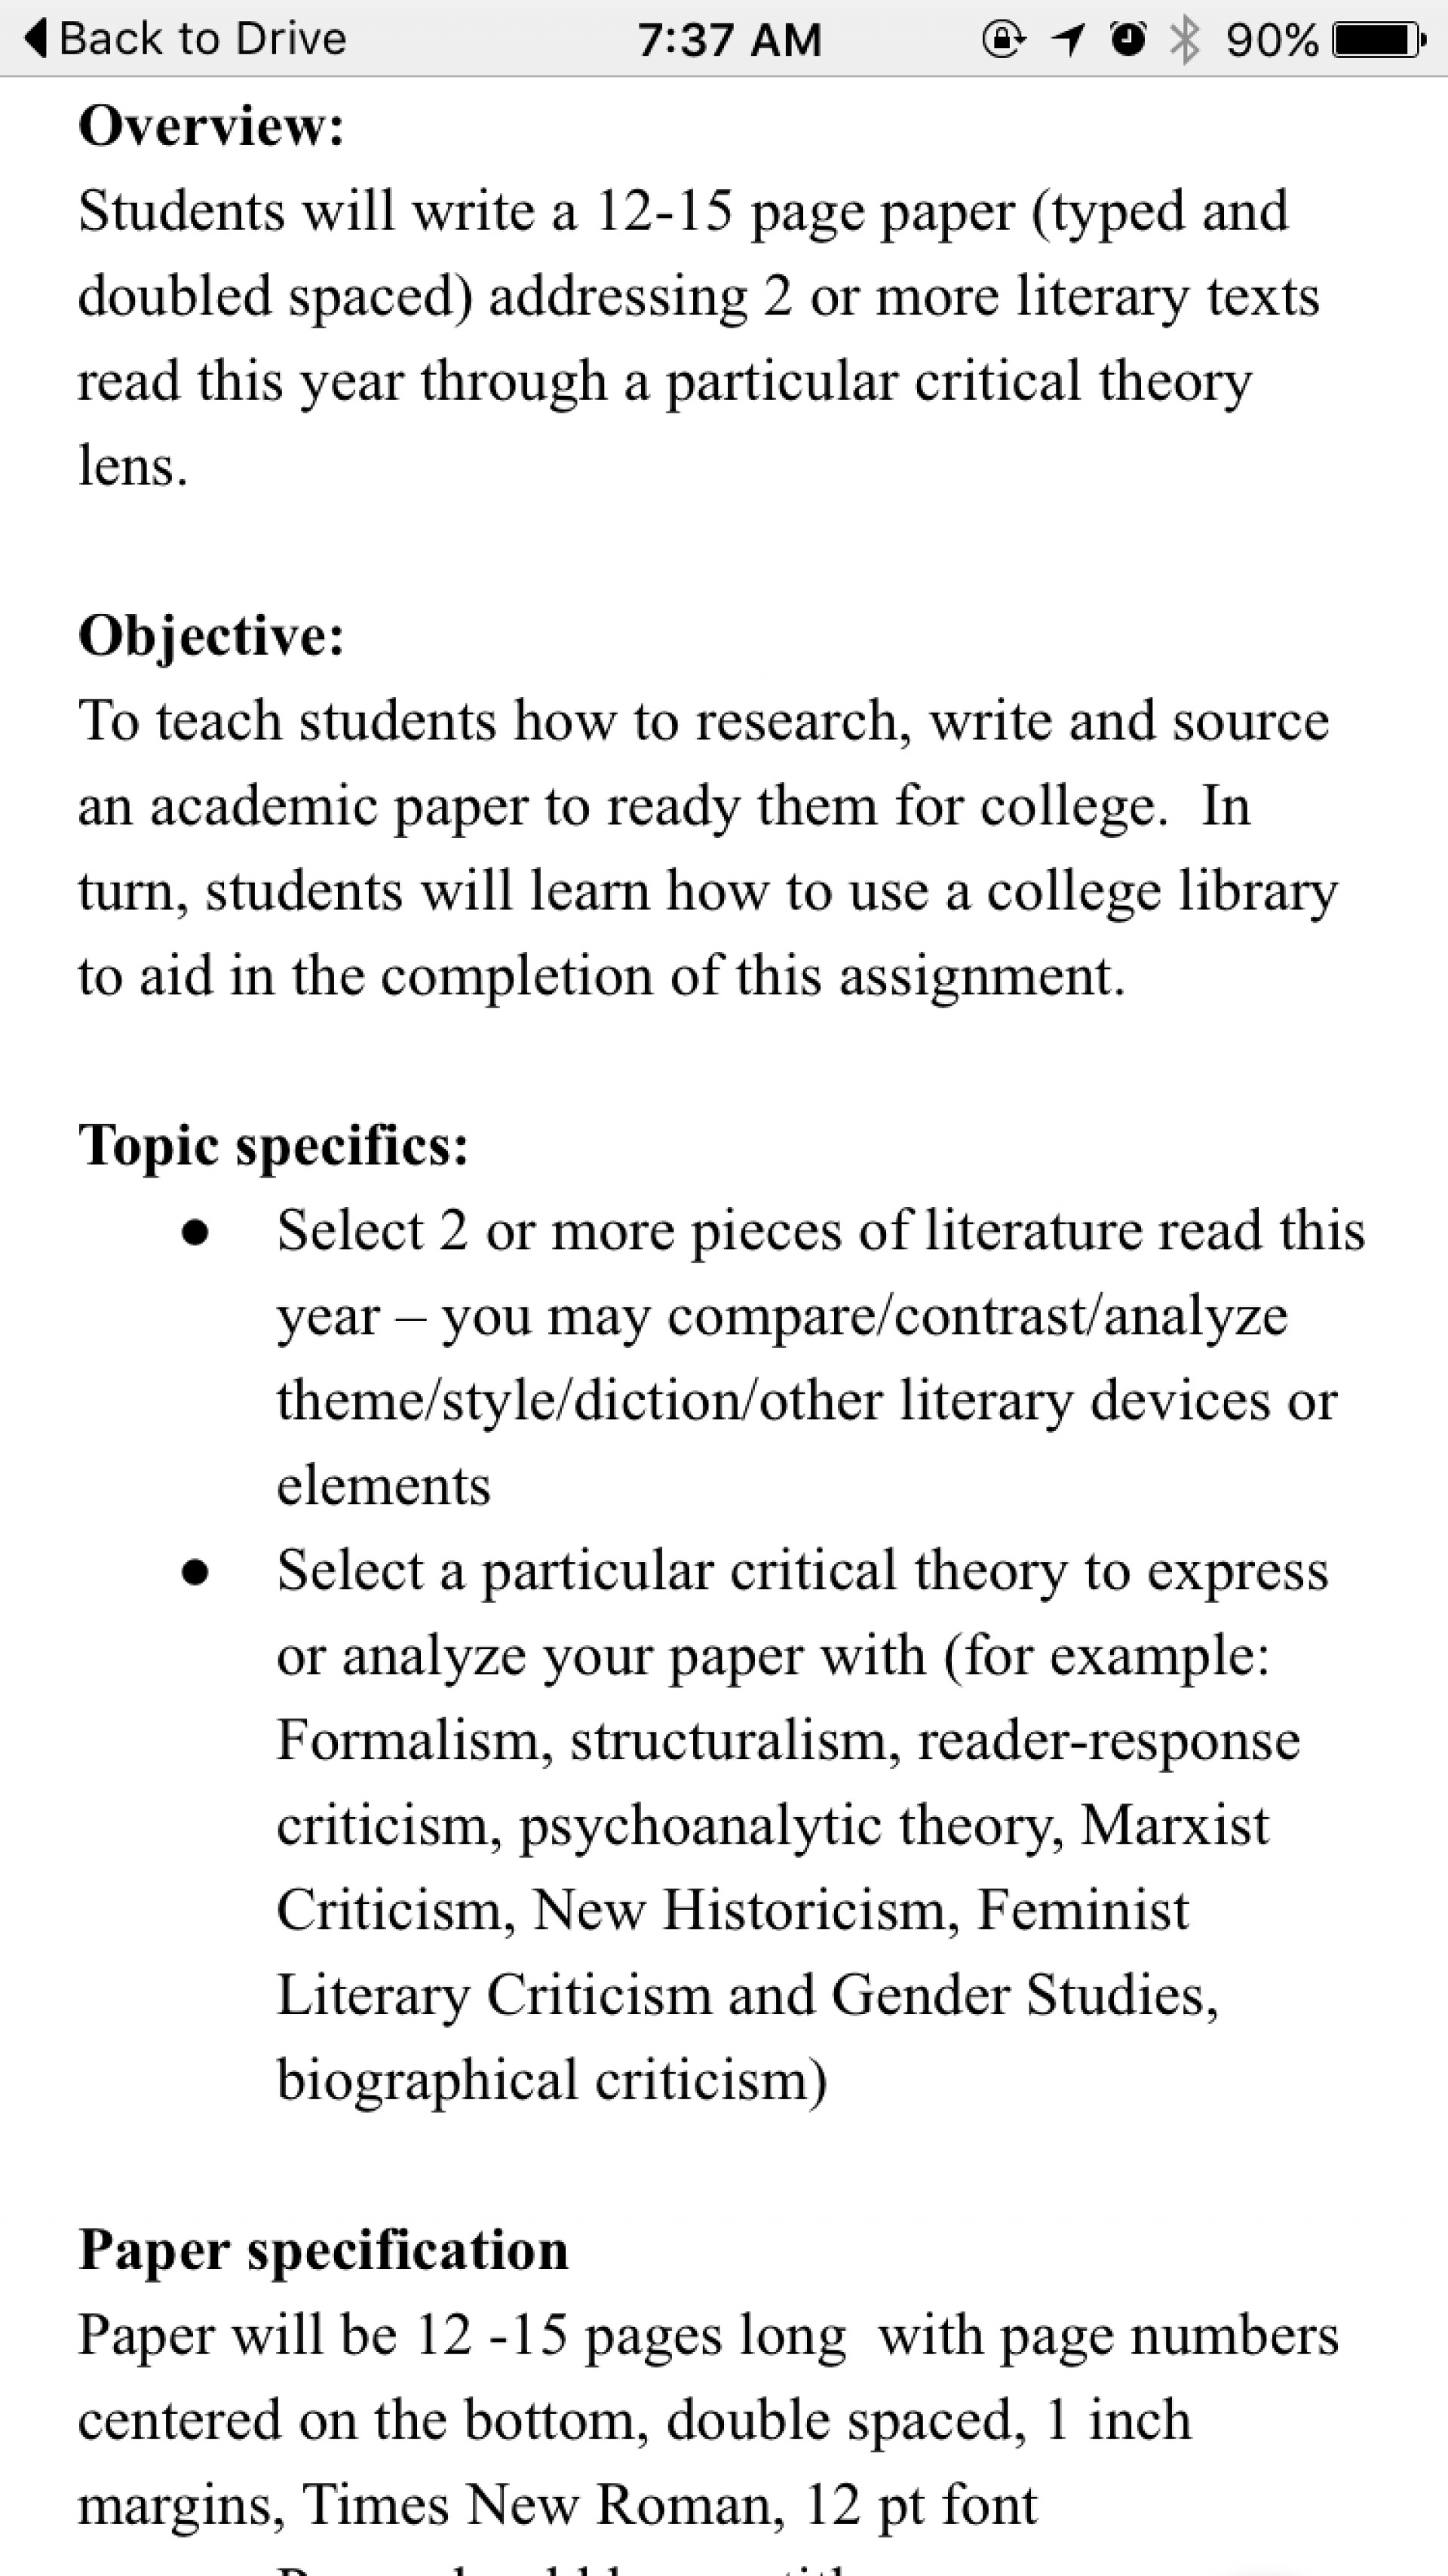 010 College Education Research Paper Topics Research20paper20image Singular 1920